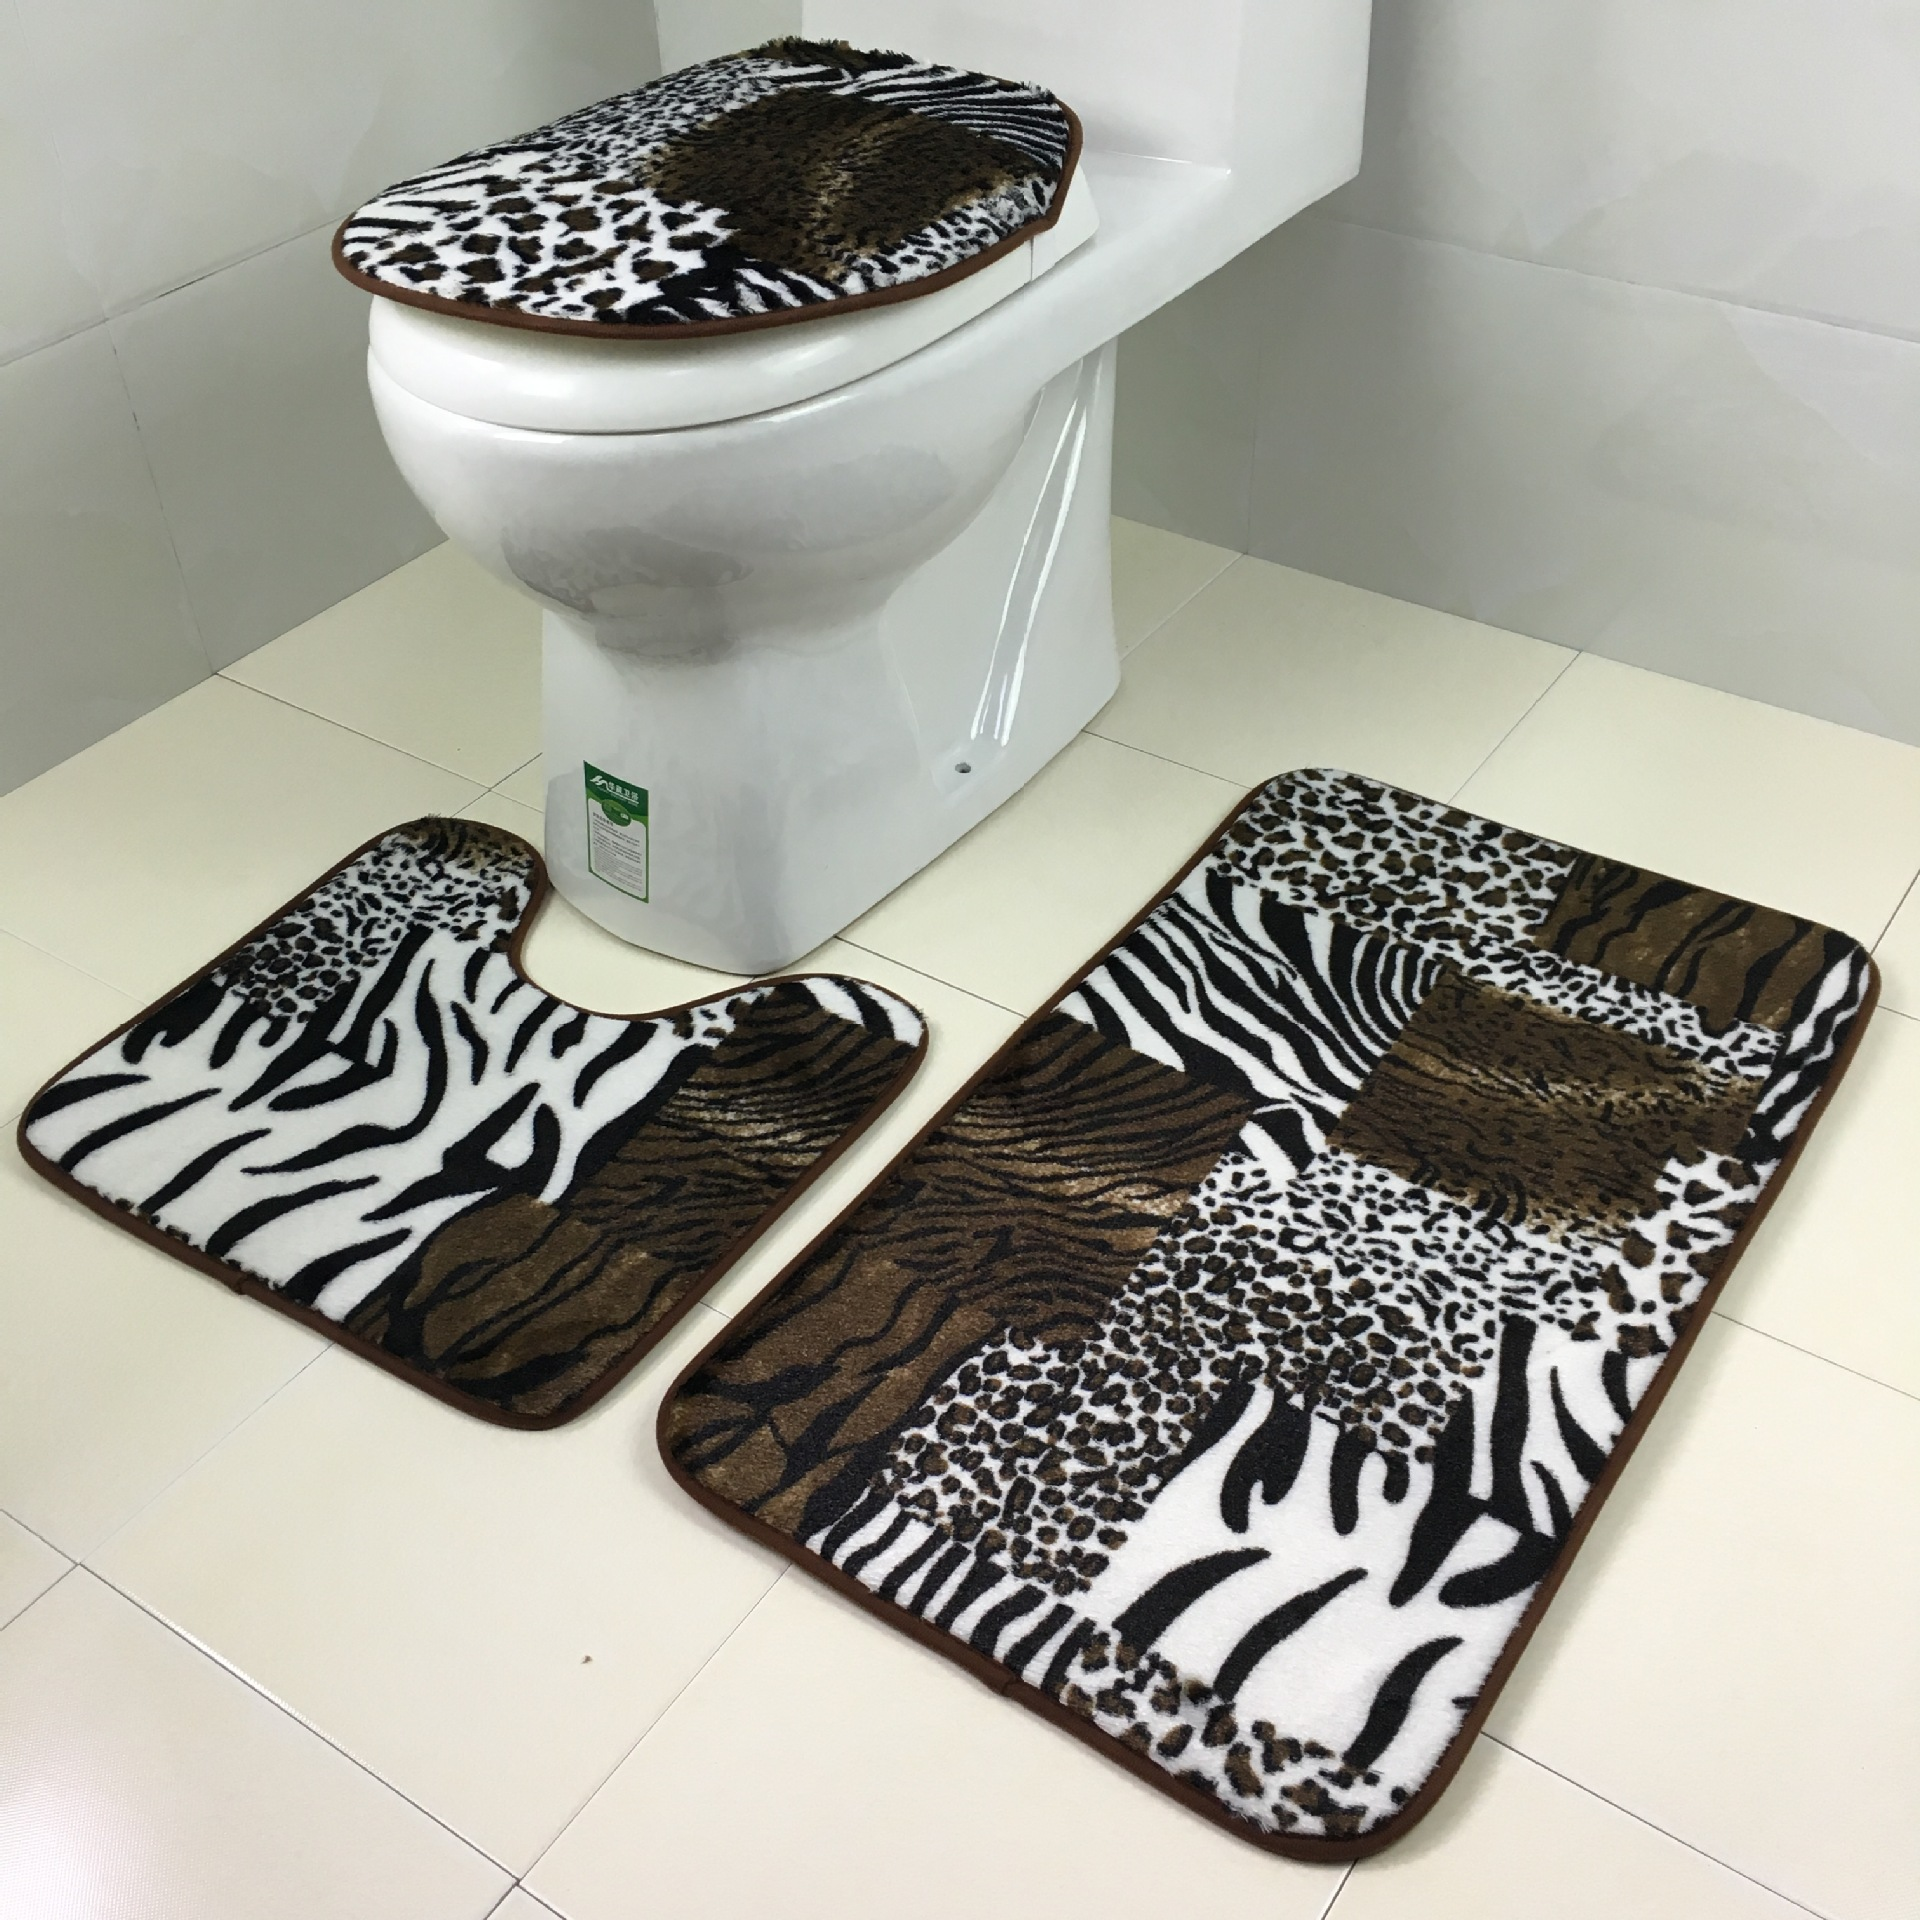 popular 3 piece bathroom mat sets-buy cheap 3 piece bathroom mat